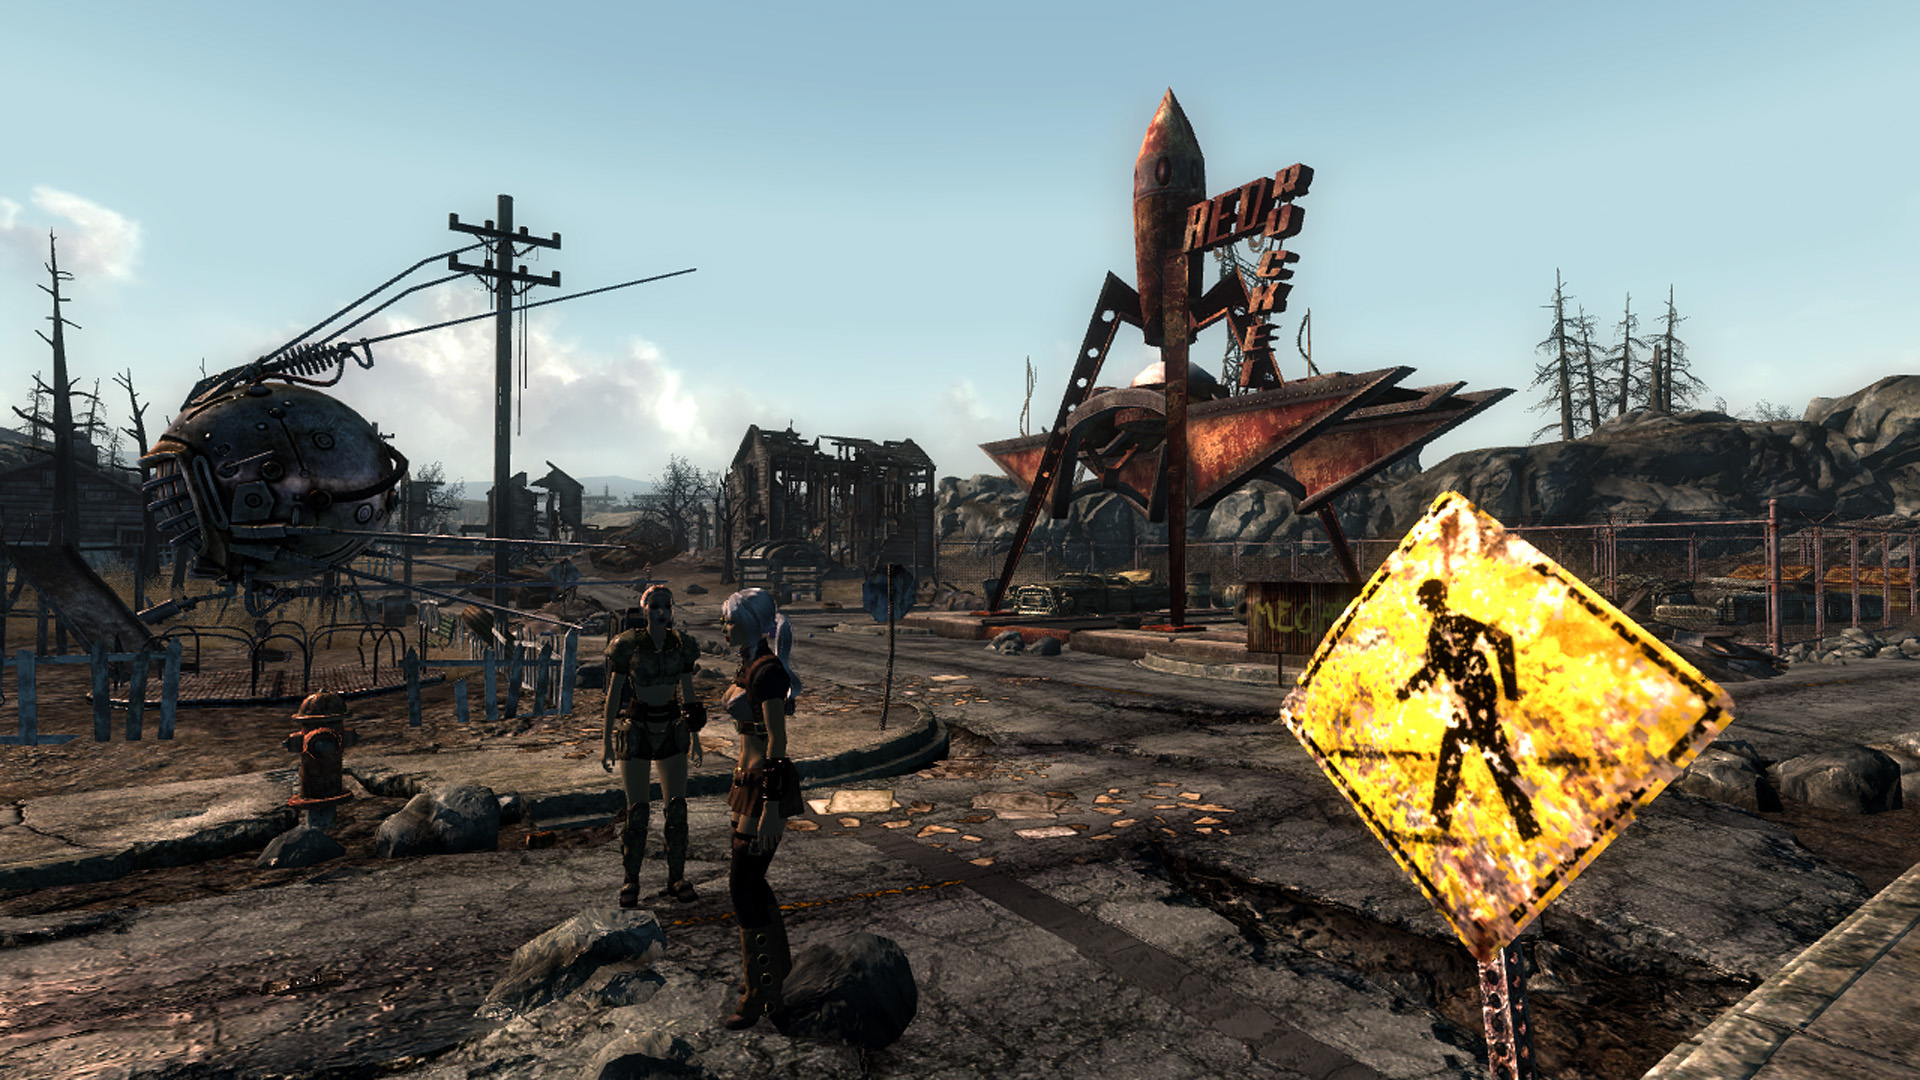 Fallout3 With Midhrastic Enb At Fallout3 Nexus Mods And Community